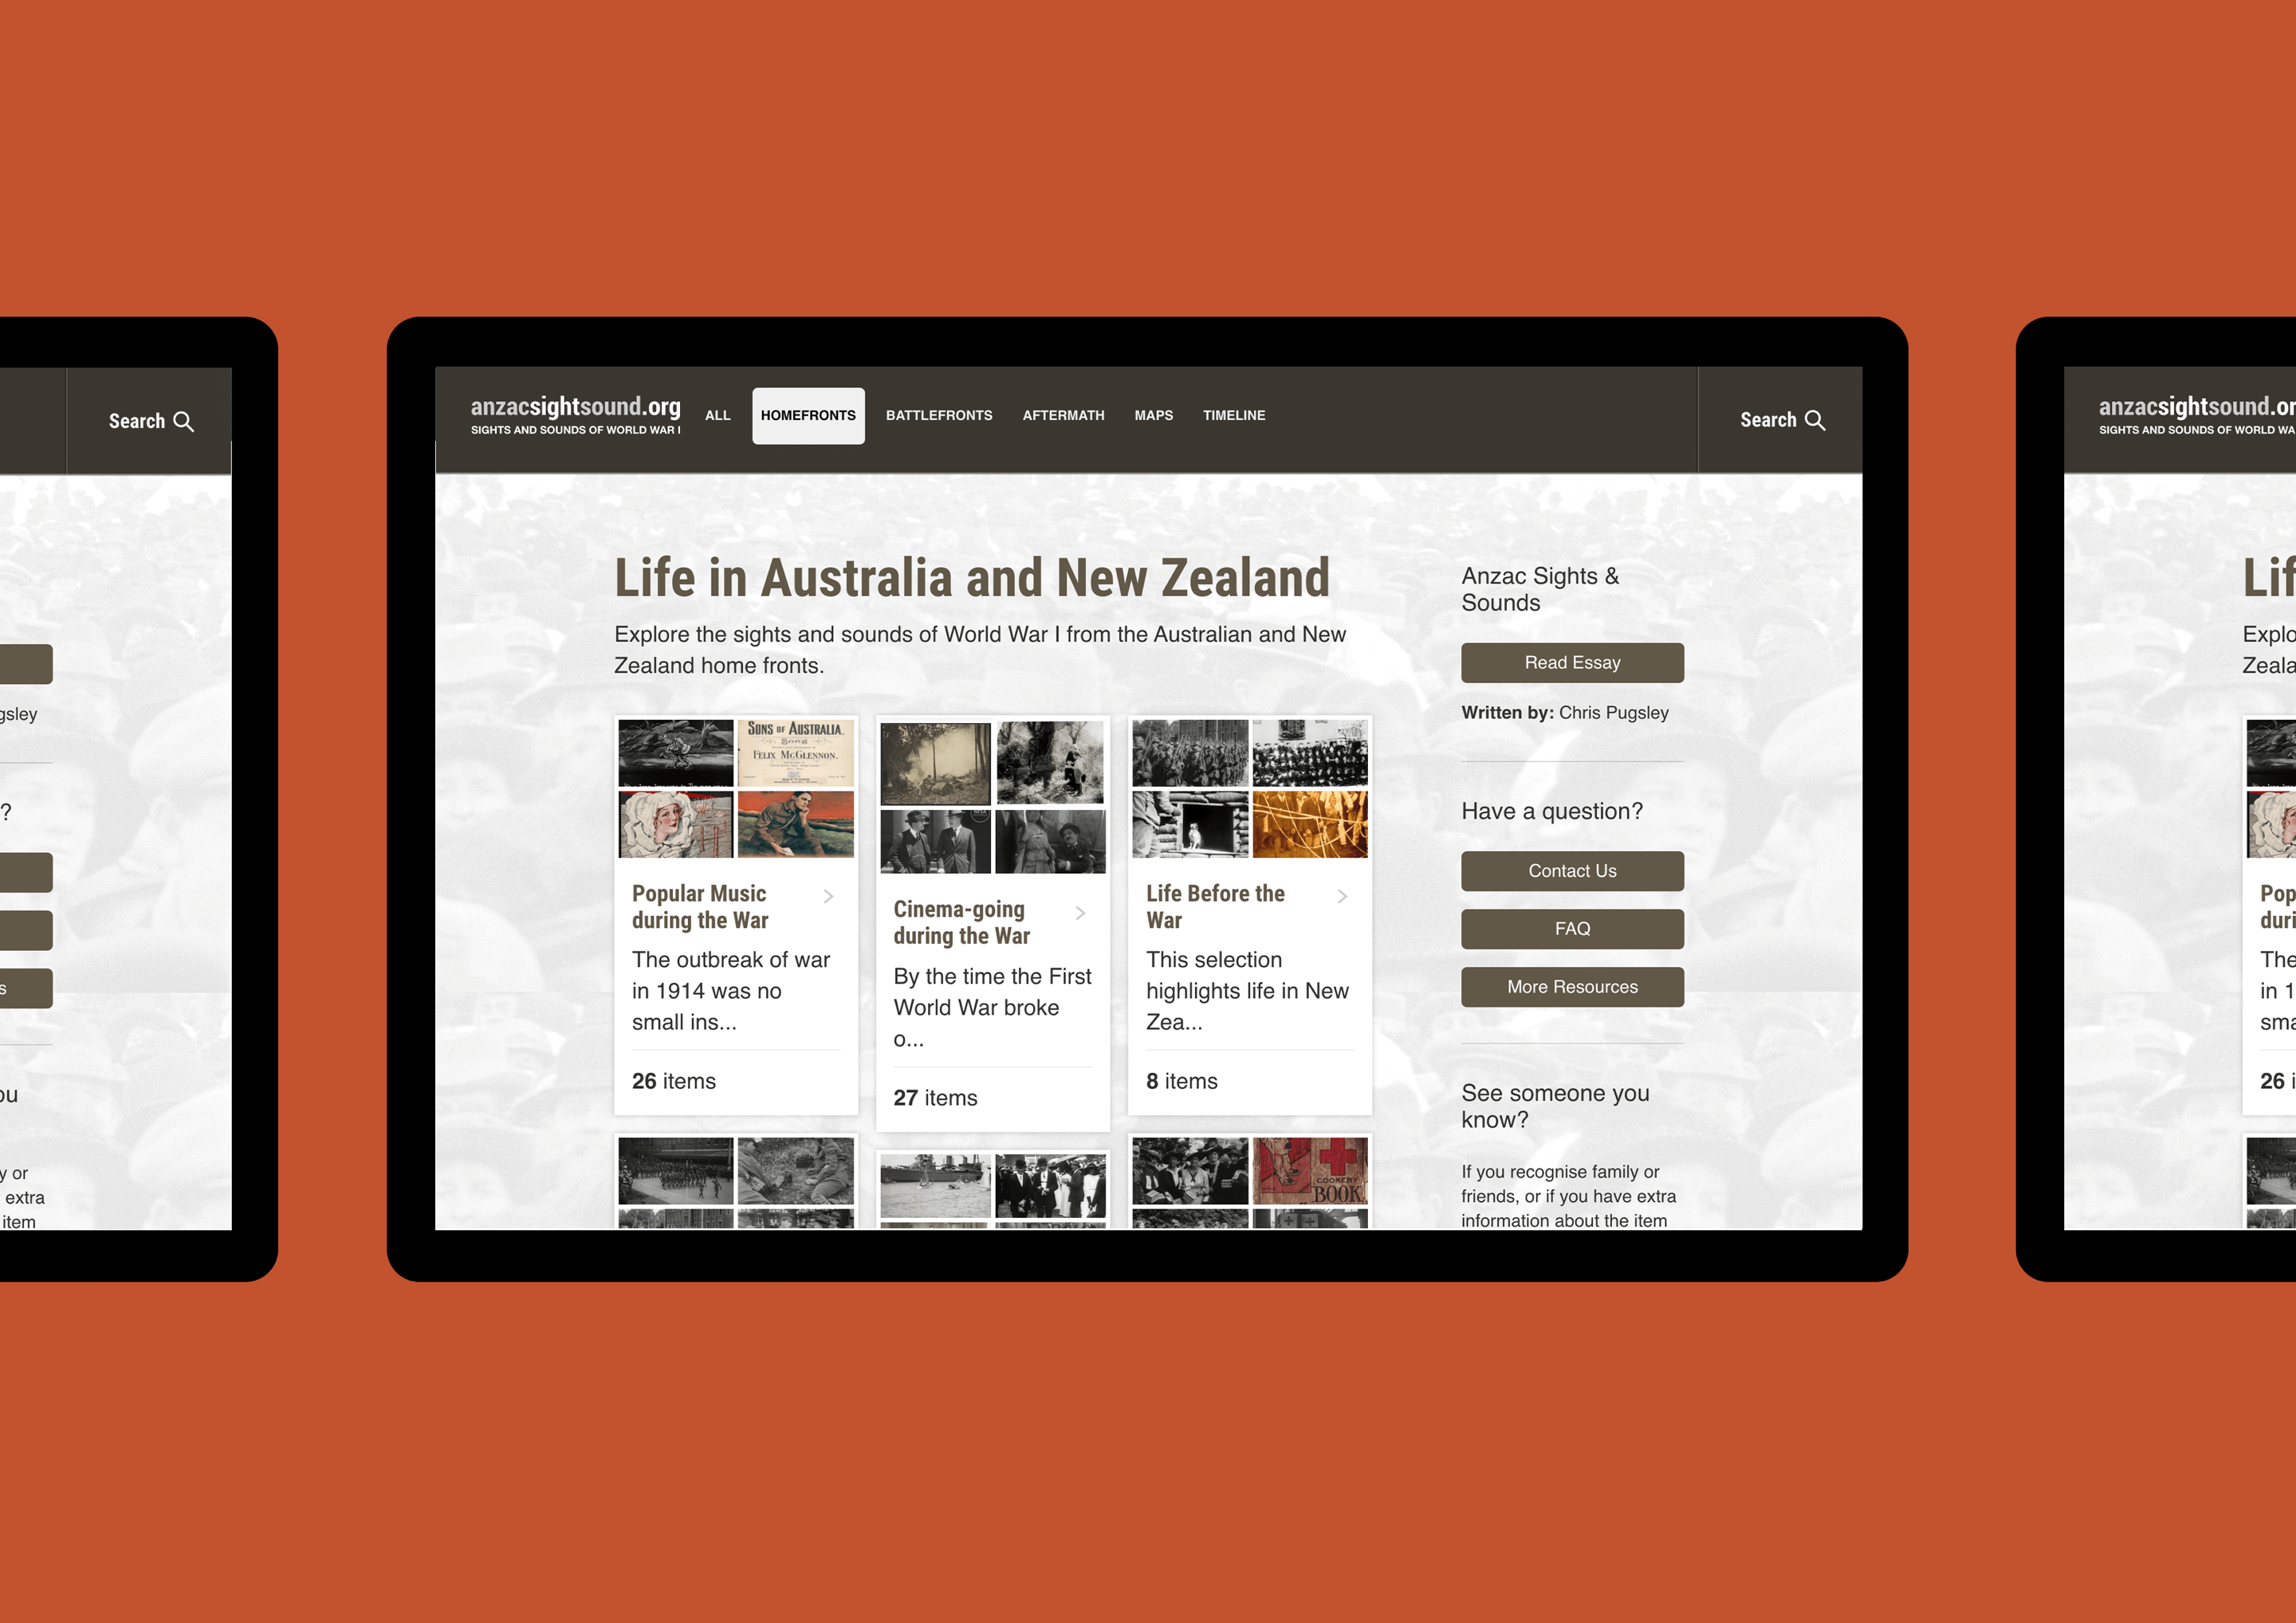 Mockup showing the Homefronts section of the Anzac Sights and Sounds website on a tablet.